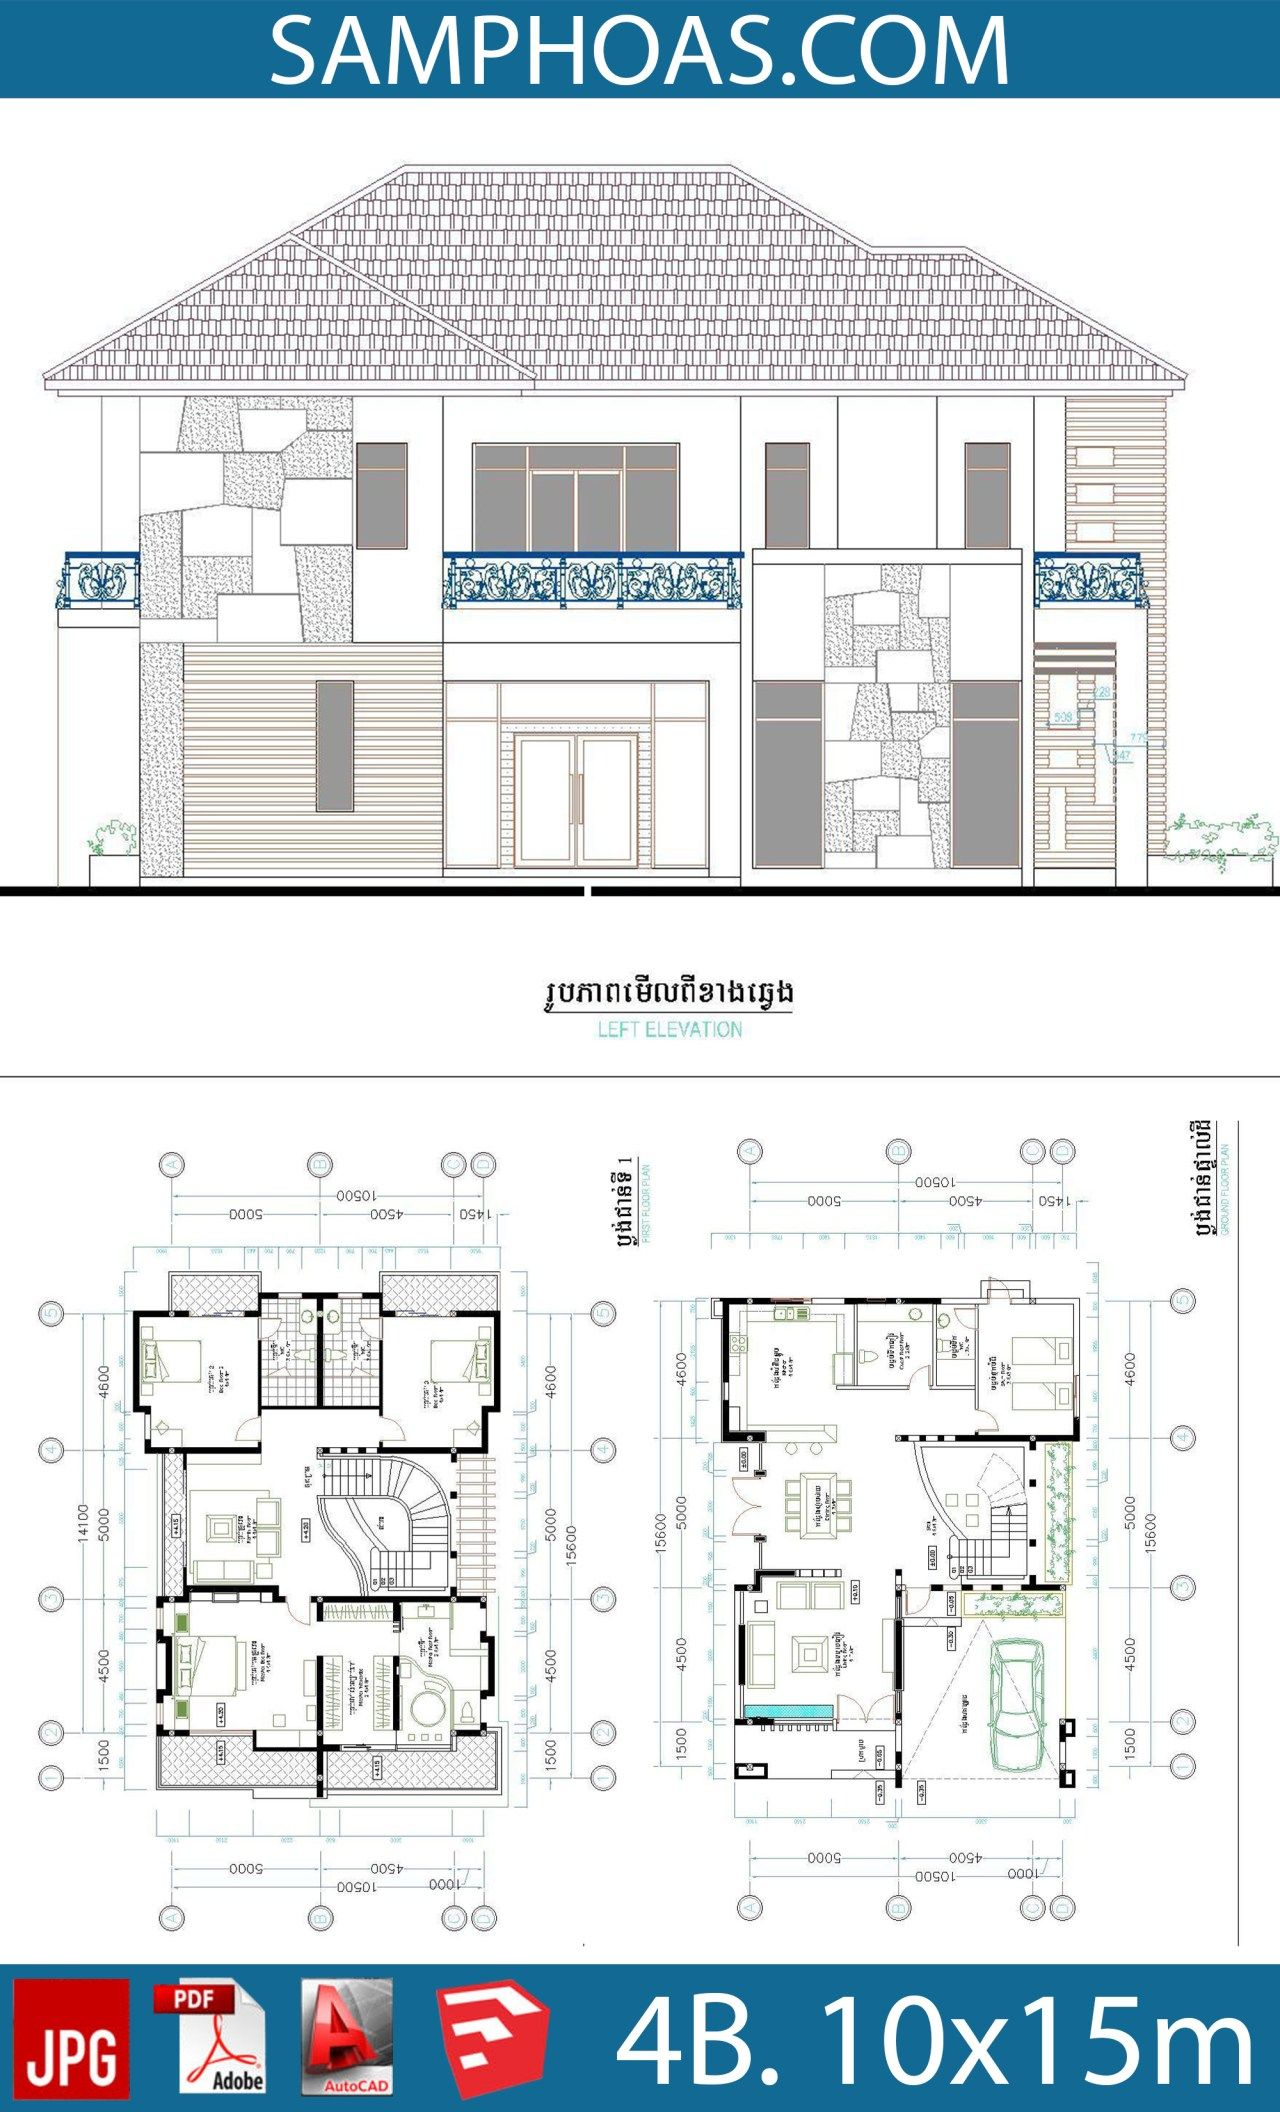 4 Bedroom Home Plan Full Exterior And Interior 10x15 6m Samphoas Plan House Plans Unique House Plans My House Plans